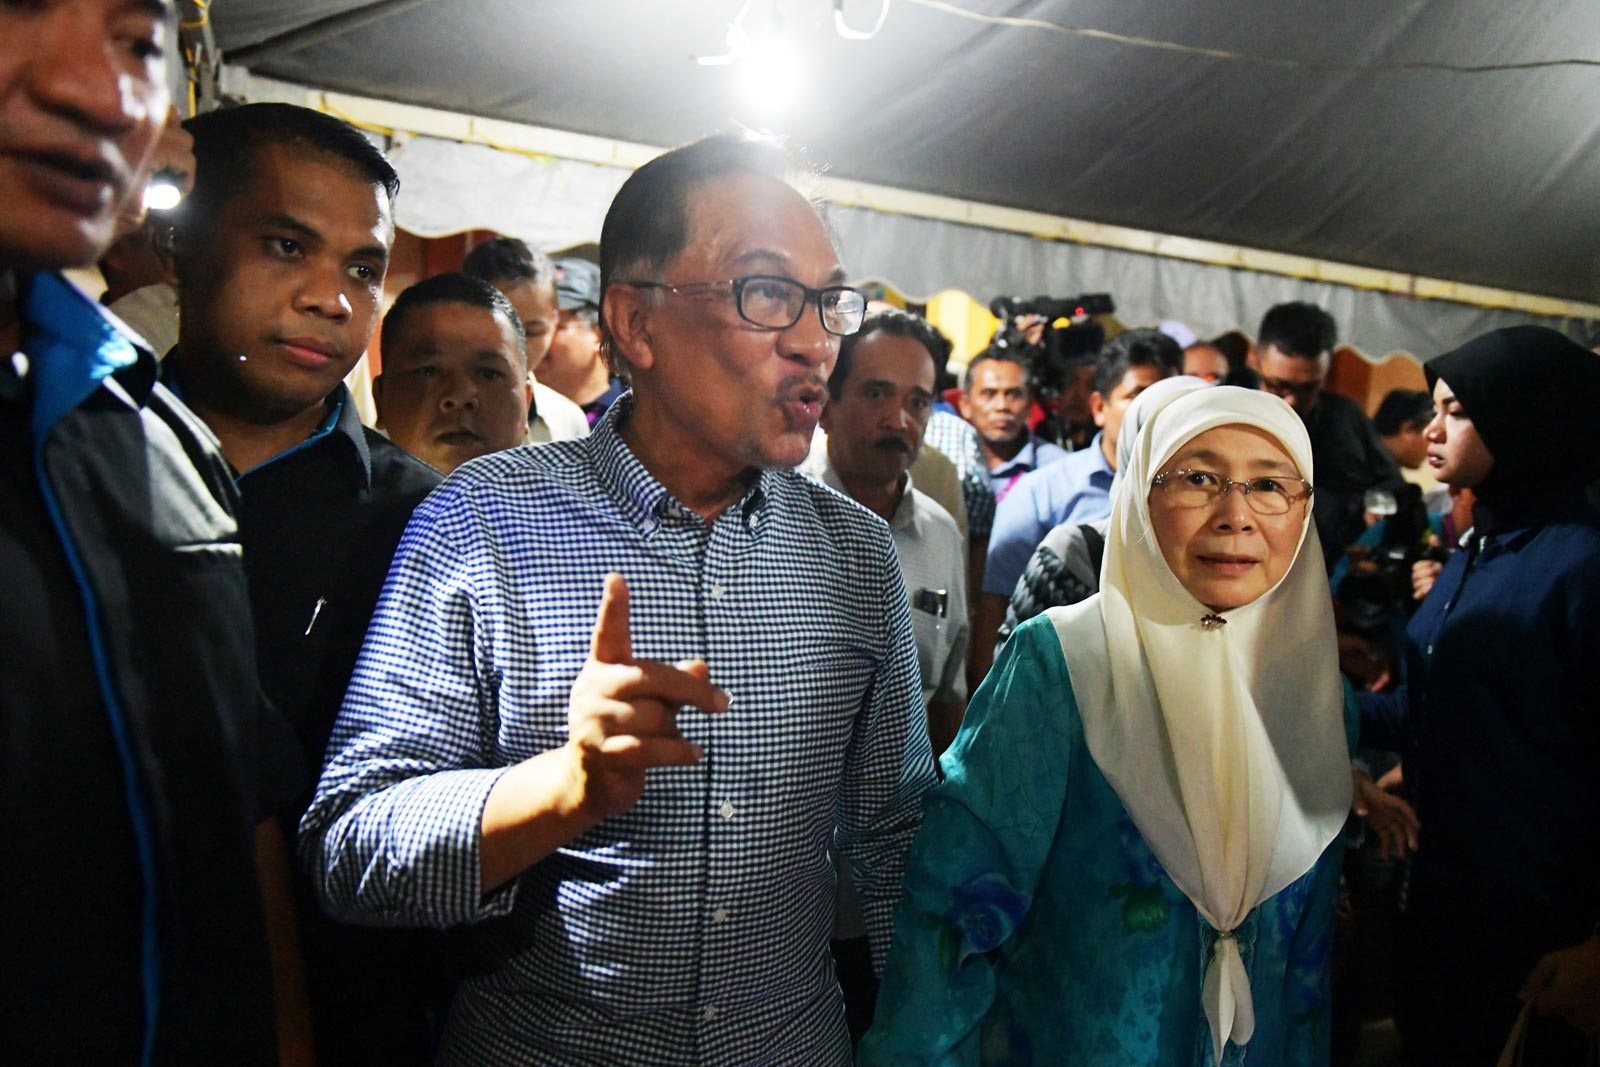 Anwar Ibrahim with his wife Wan Azizah Wan Ismail.